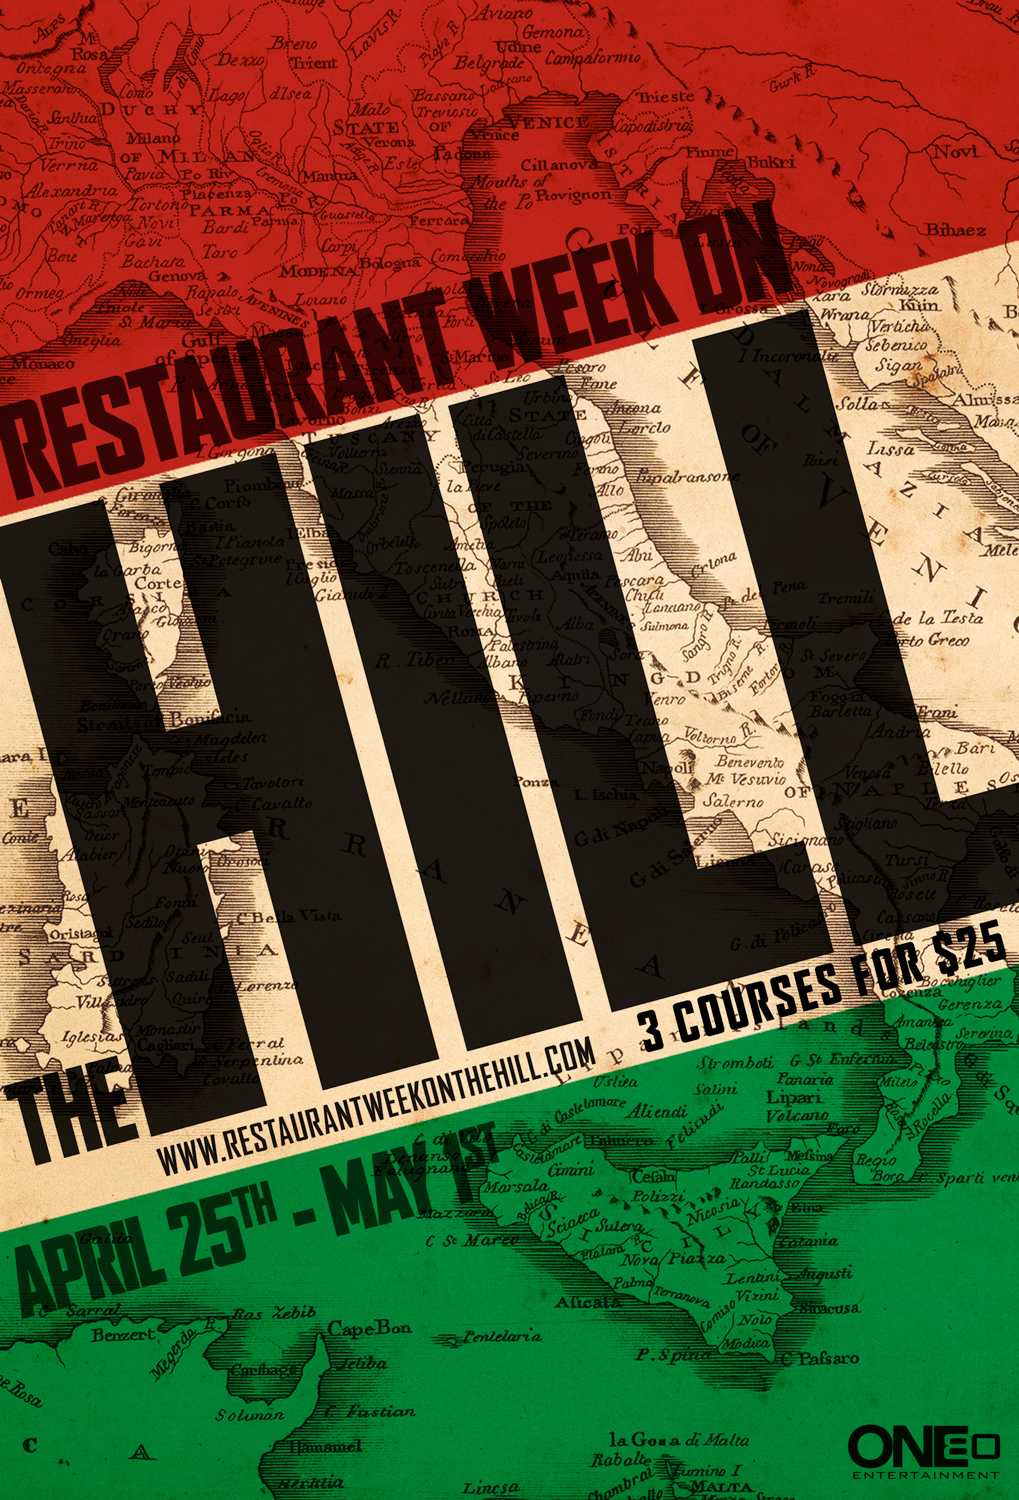 Restaurant Week on the Hill Campaign